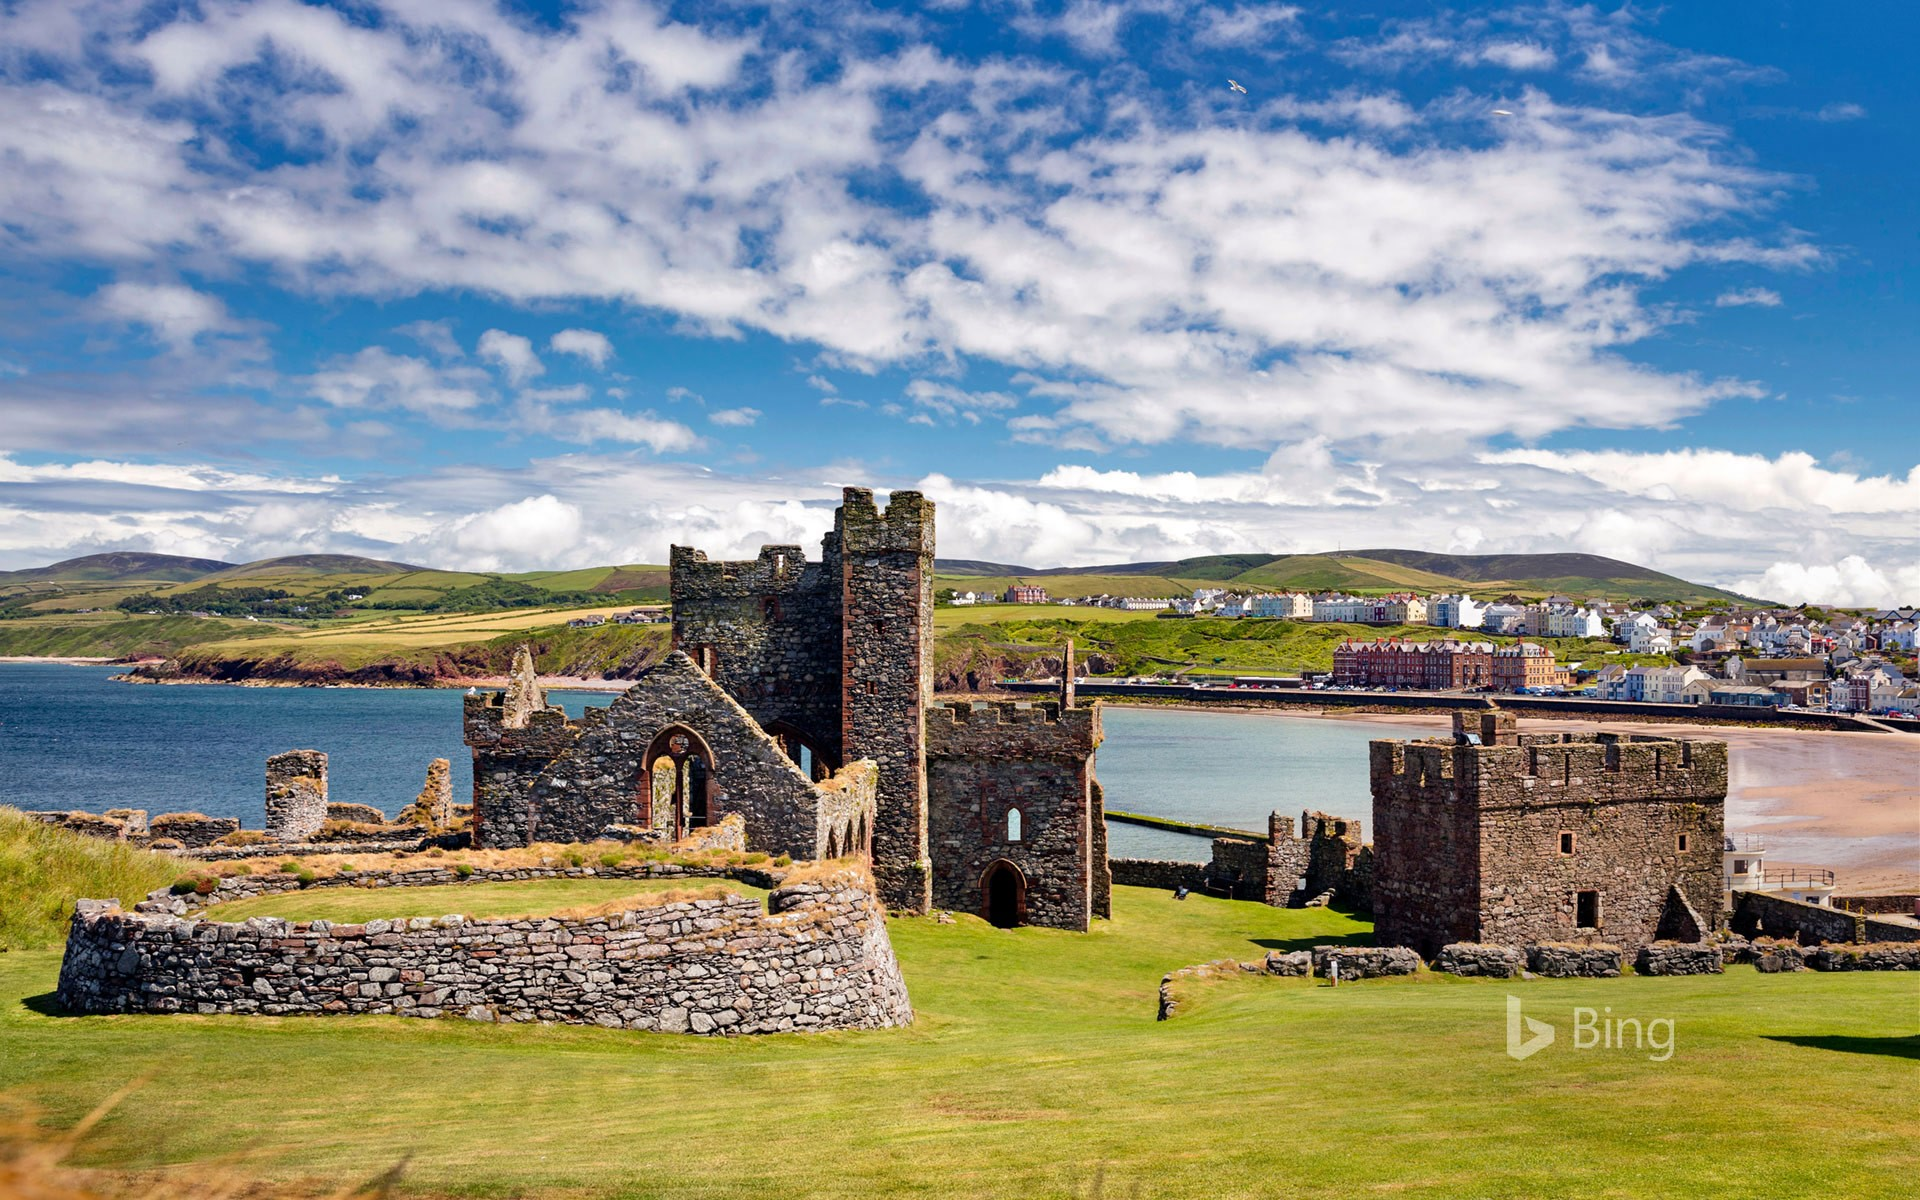 Peel Castle on St Patrick's Isle, Isle of Man